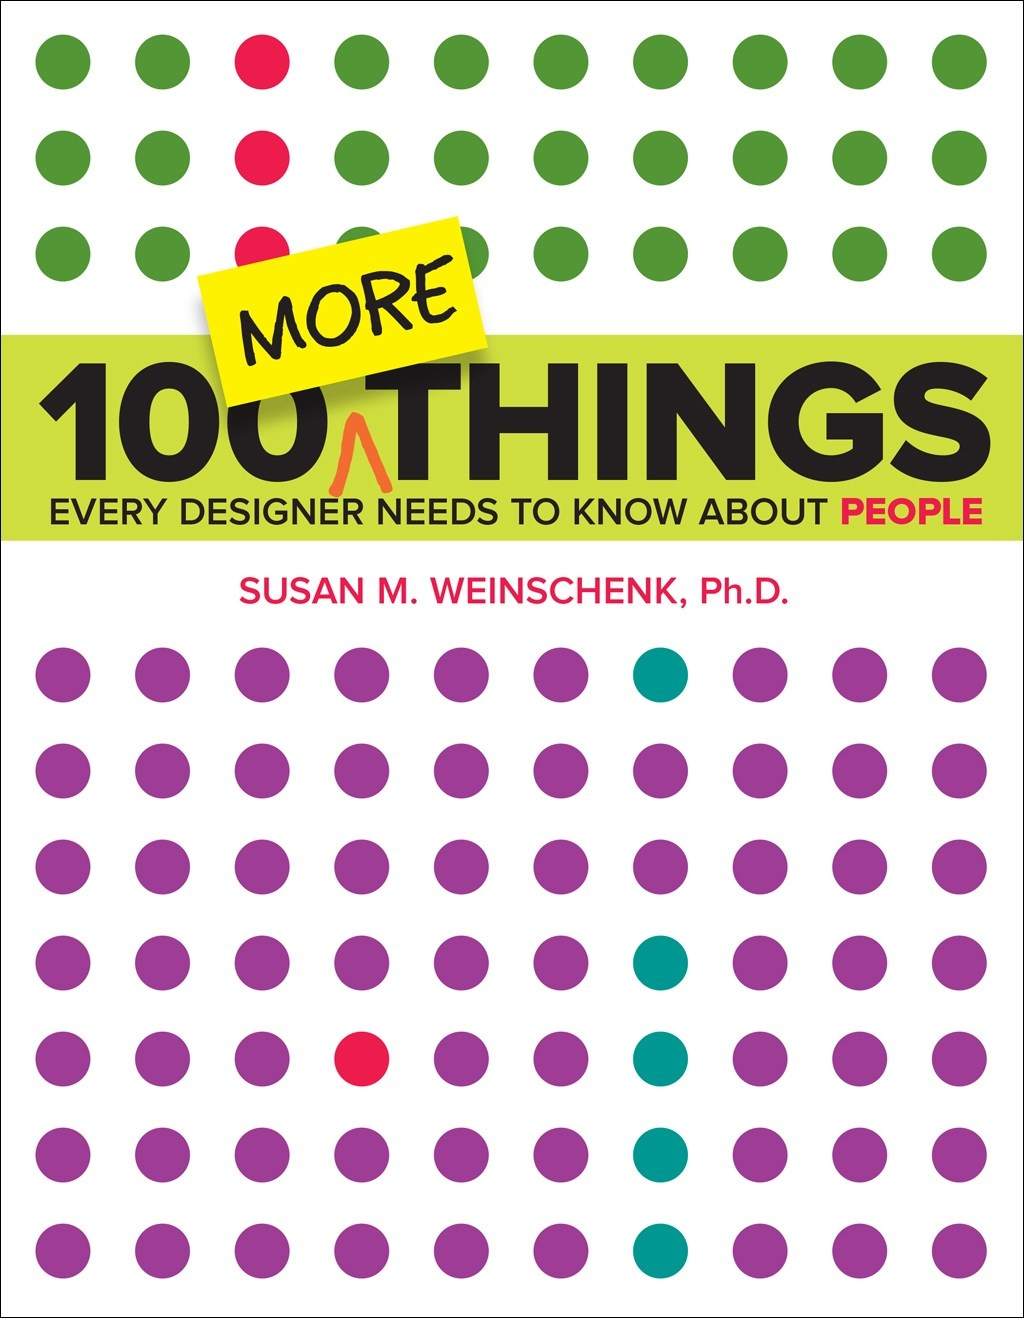 100 More Things Every Designer Needs To Know About People, cover